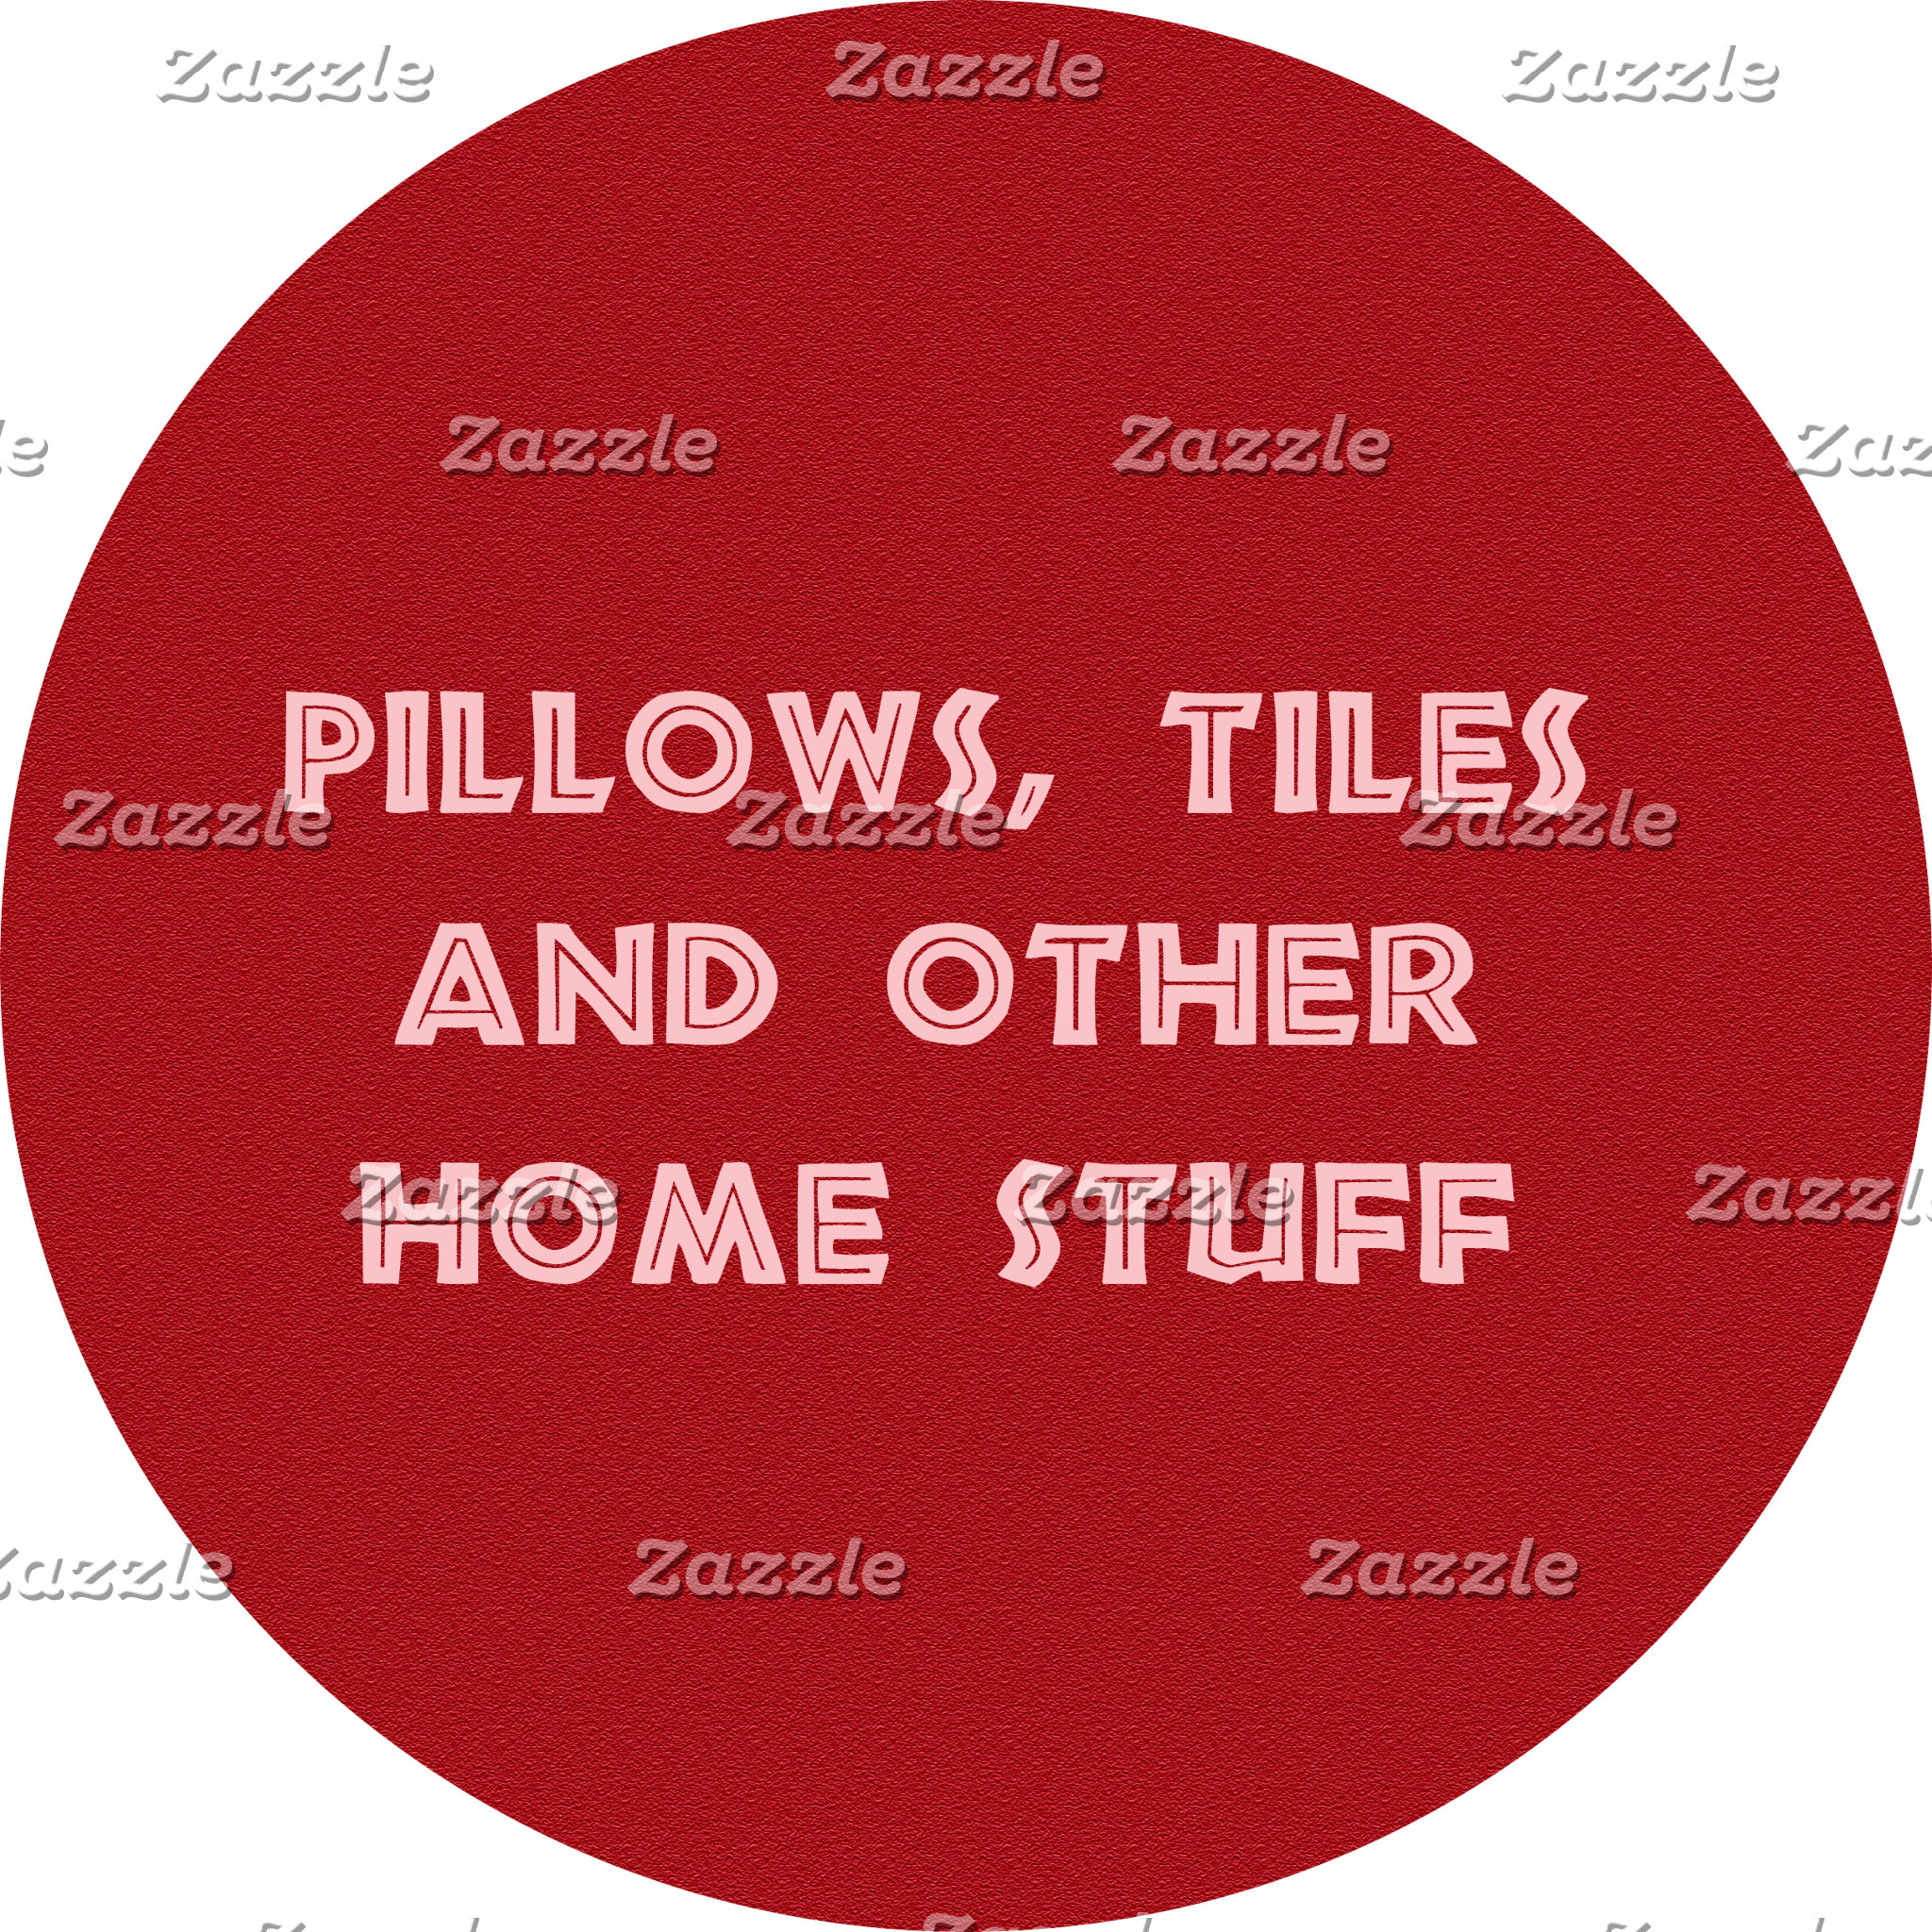 Pillows, Tiles and other home stuff